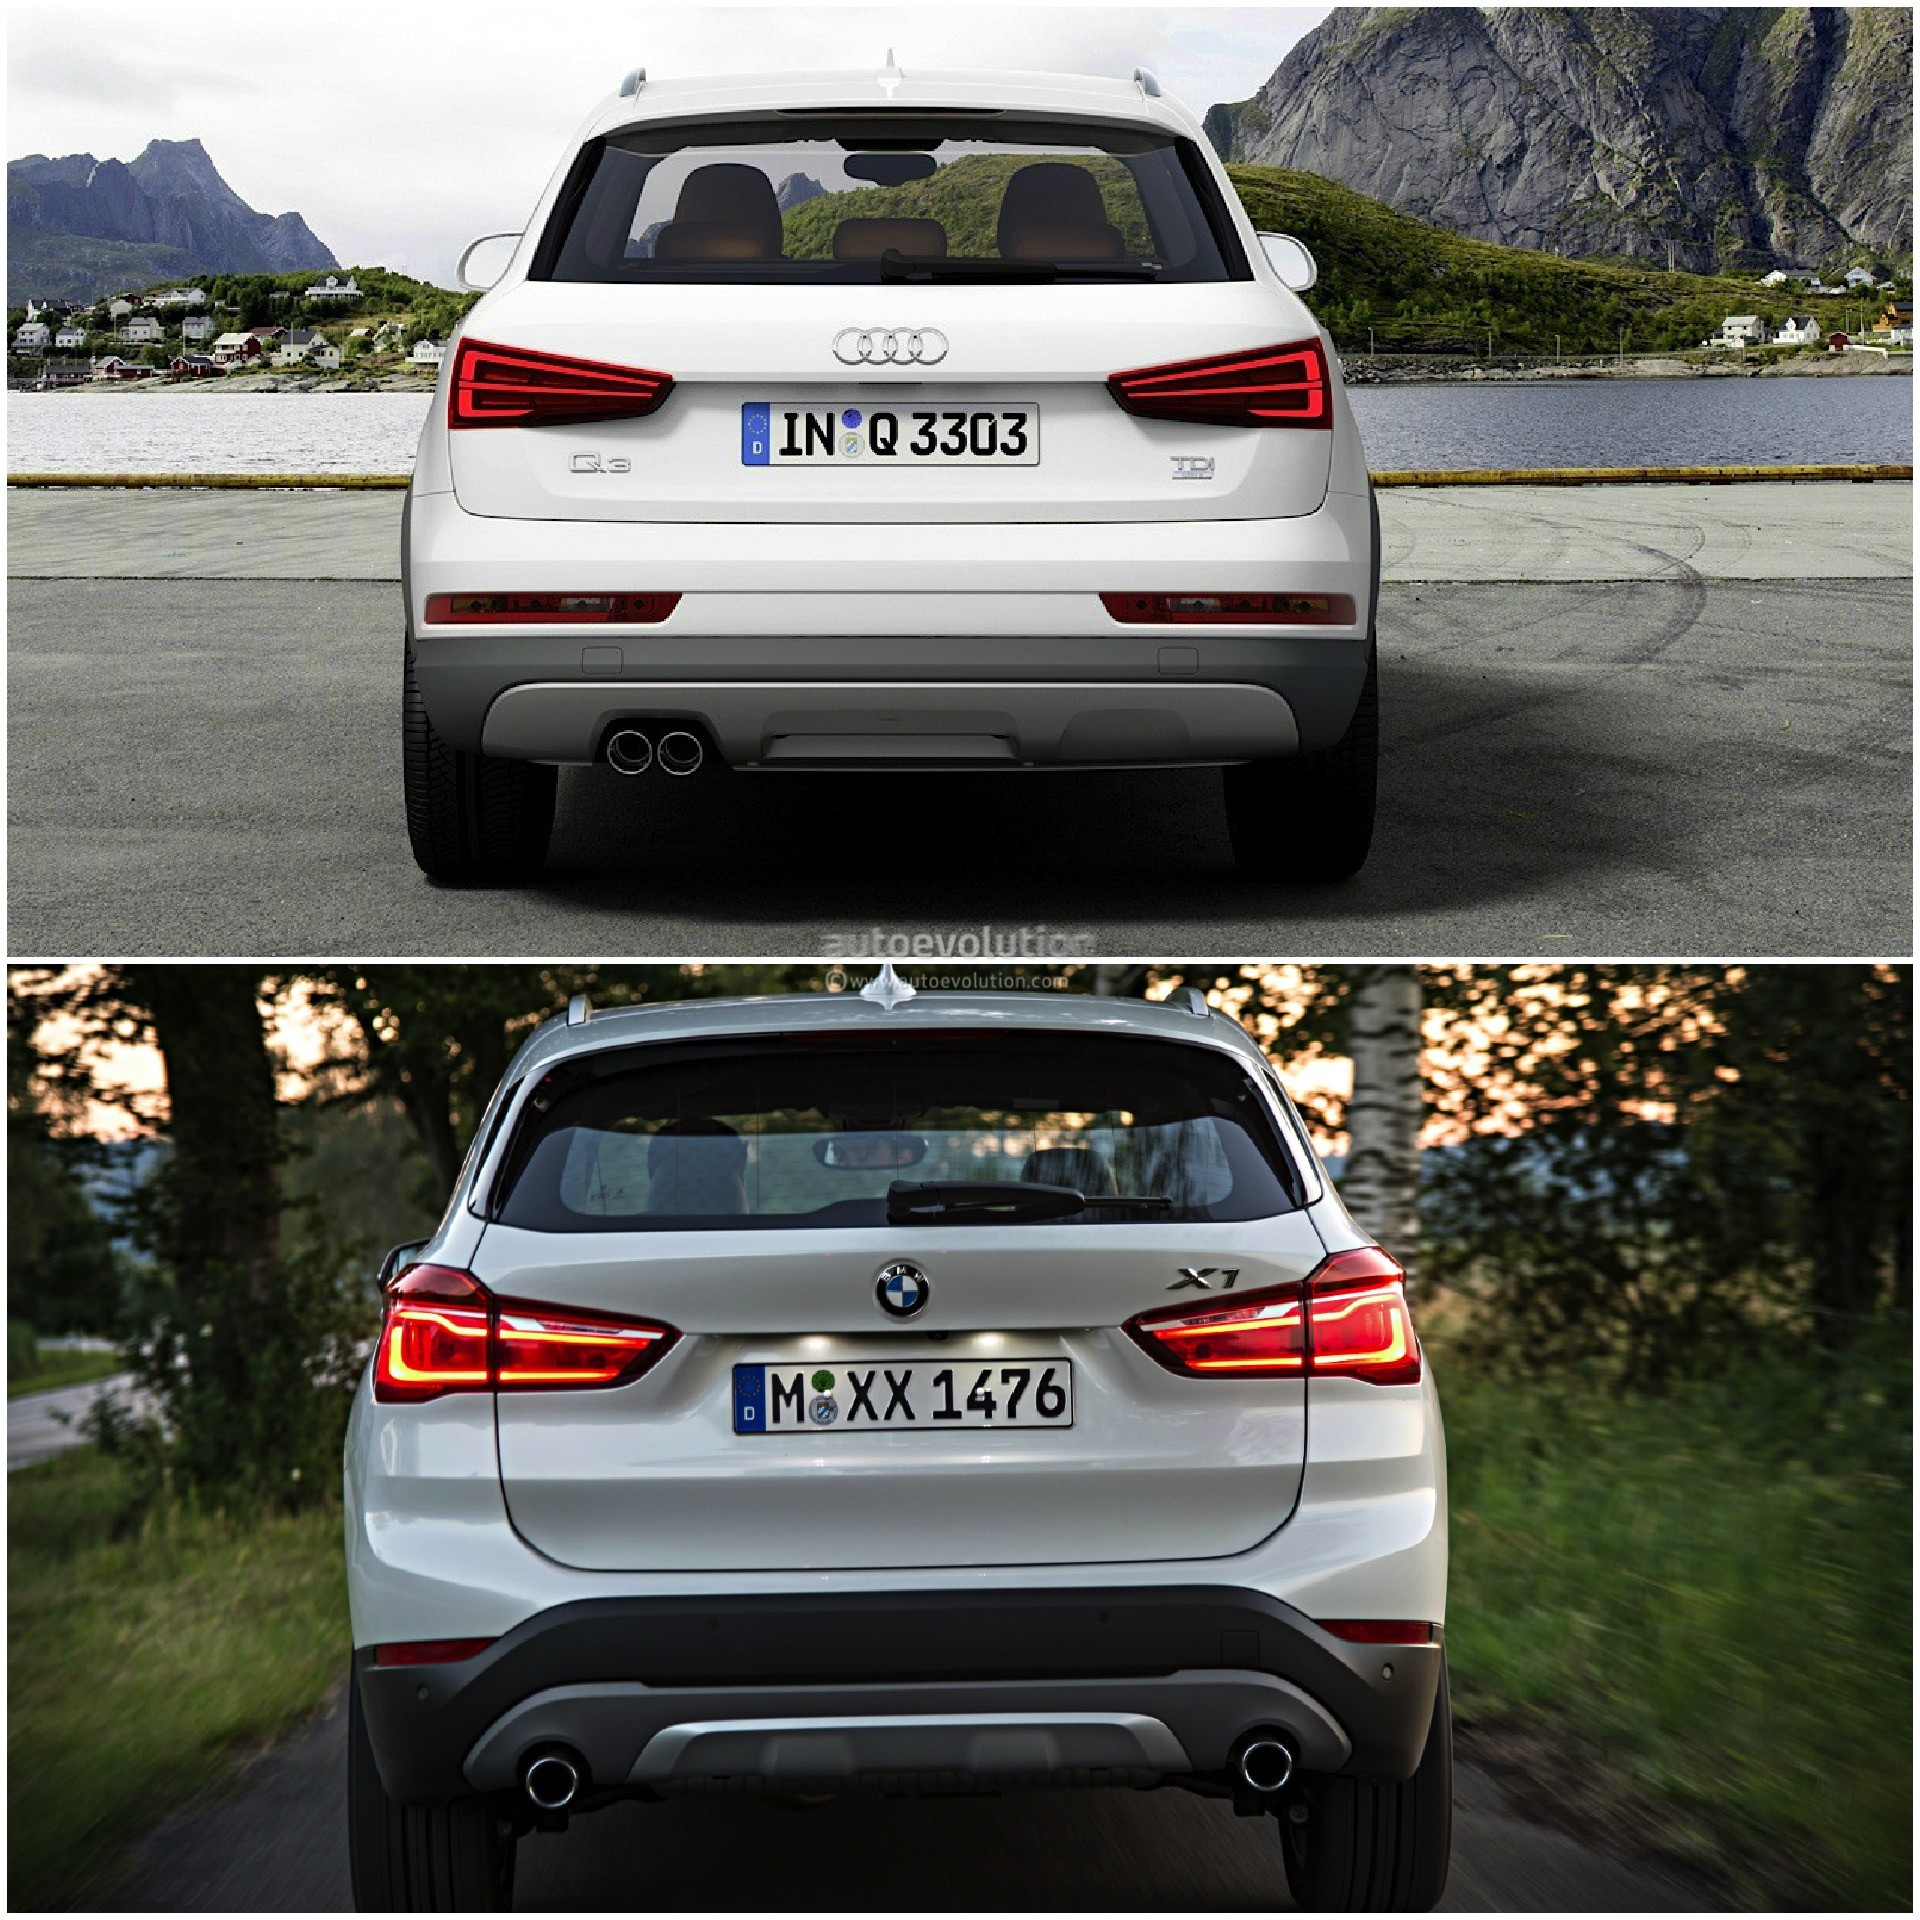 Photo Comparison 2015 Bmw X1 Versus 2015 Audi Q3